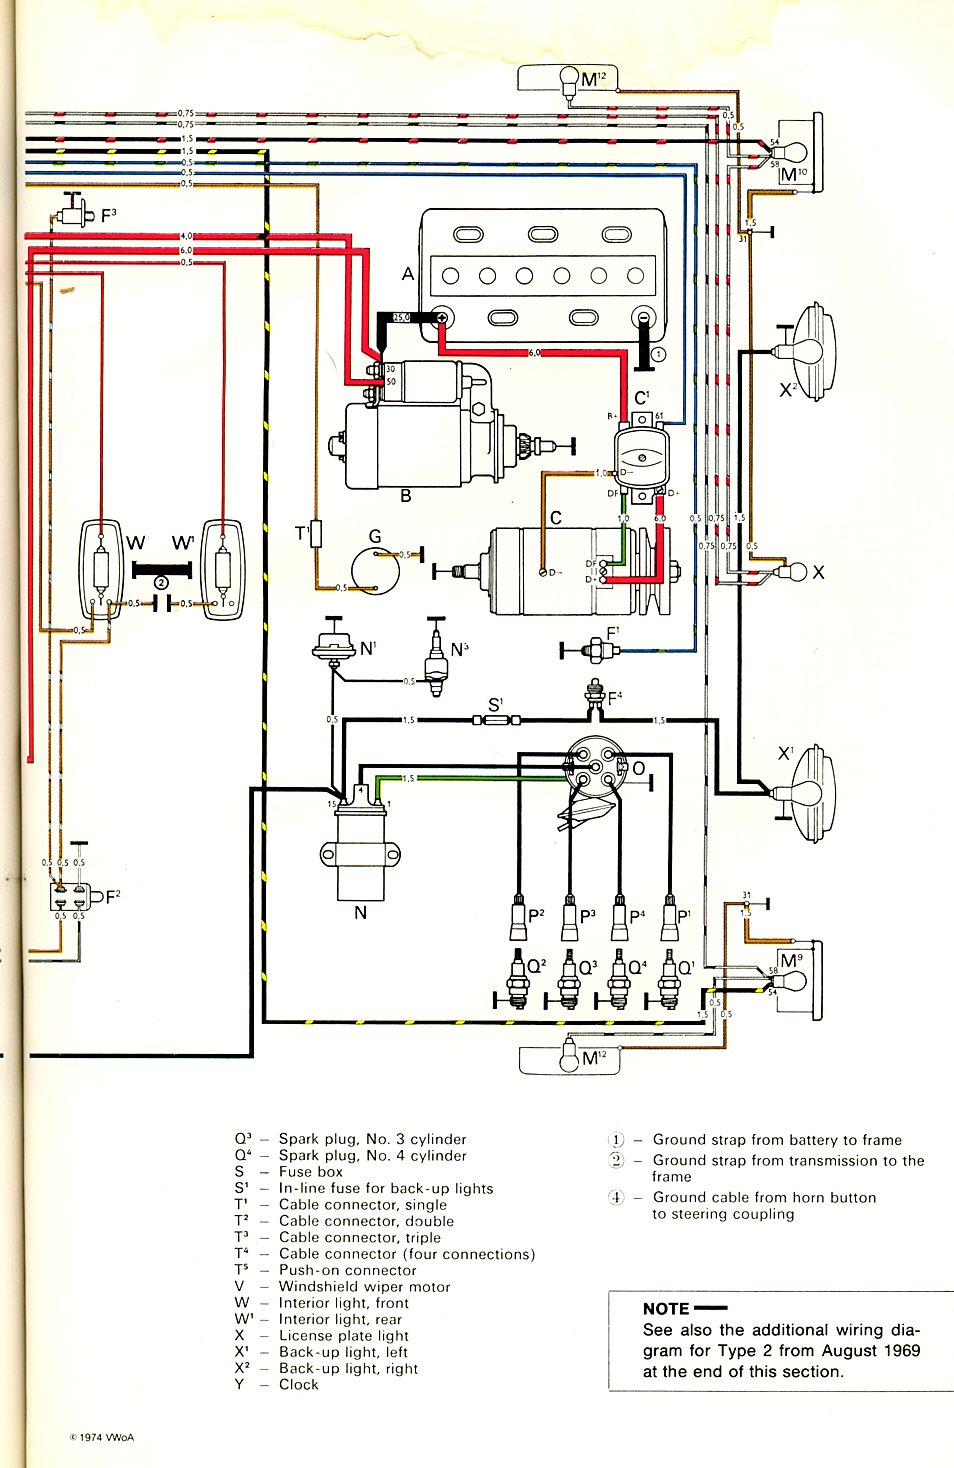 1974 Vw Bus Alternator Wiring Content Resource Of Diagram Bug Generator Thesamba Com Type 2 Diagrams To Conversion